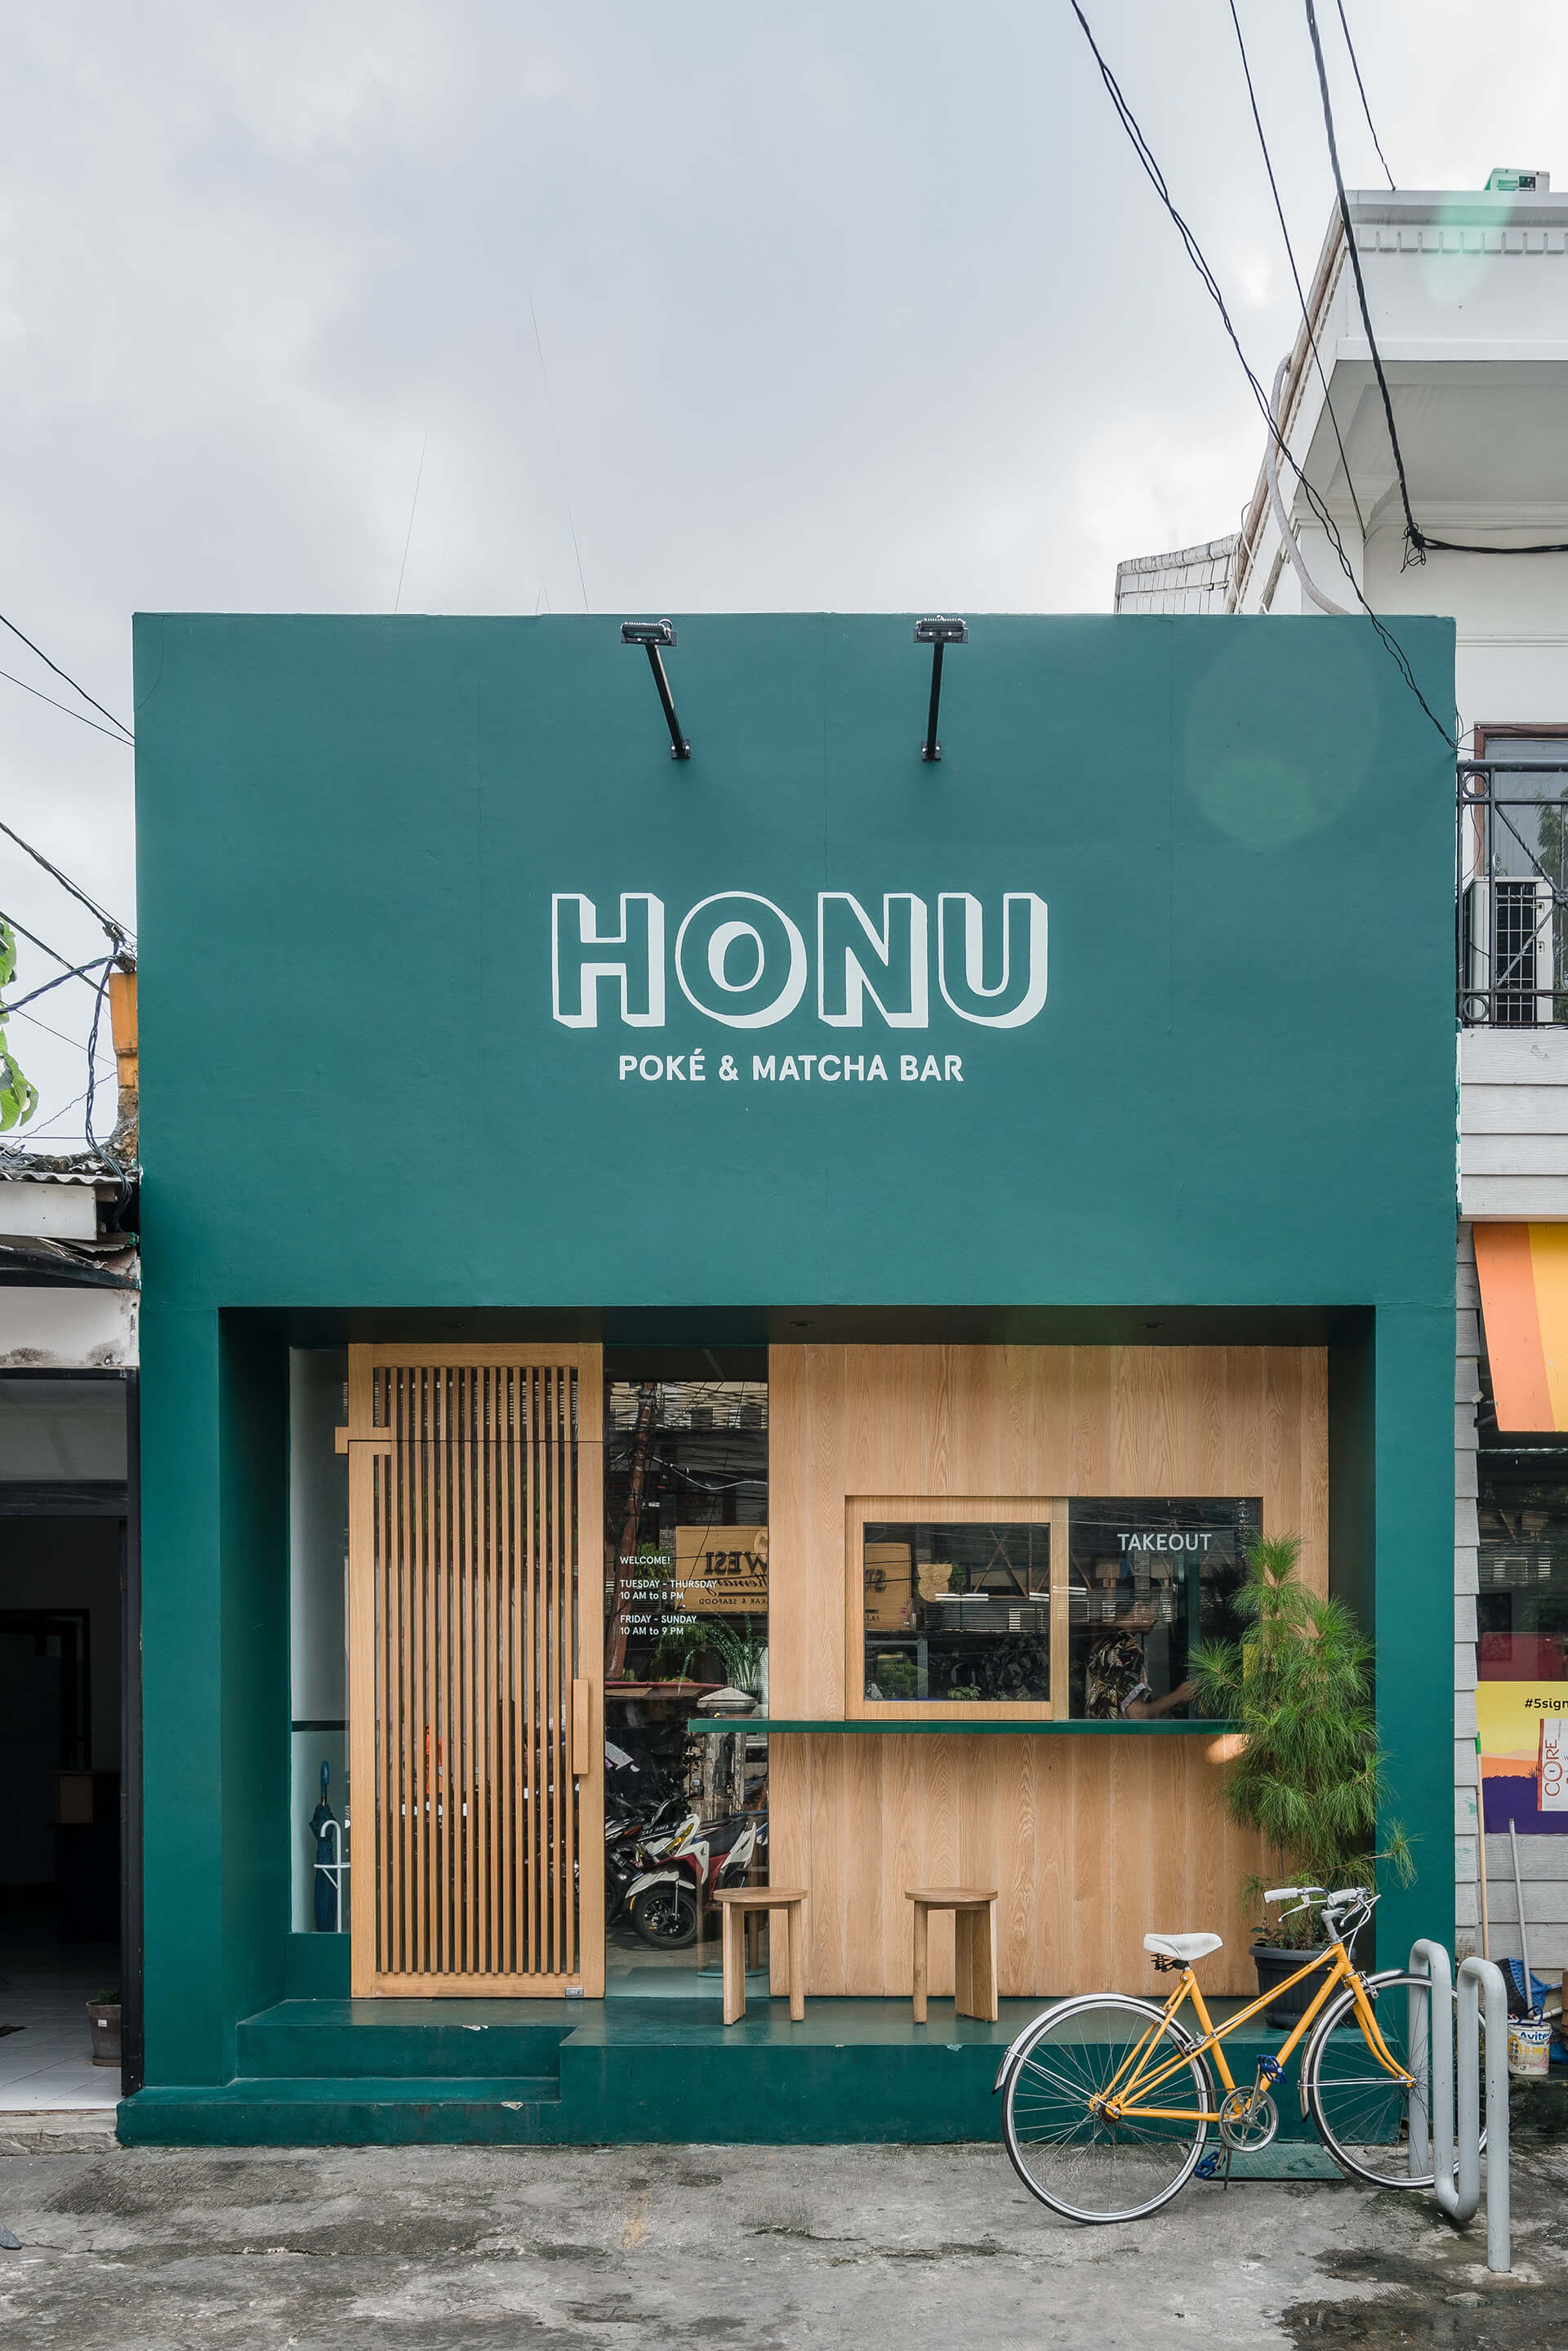 Honu Poke & Matcha Bar. Take out window as an integral part of the design. Project by Rafael Miranti Architects | Rafael Miranti architects  | Design After COVID-19 | STIRworld